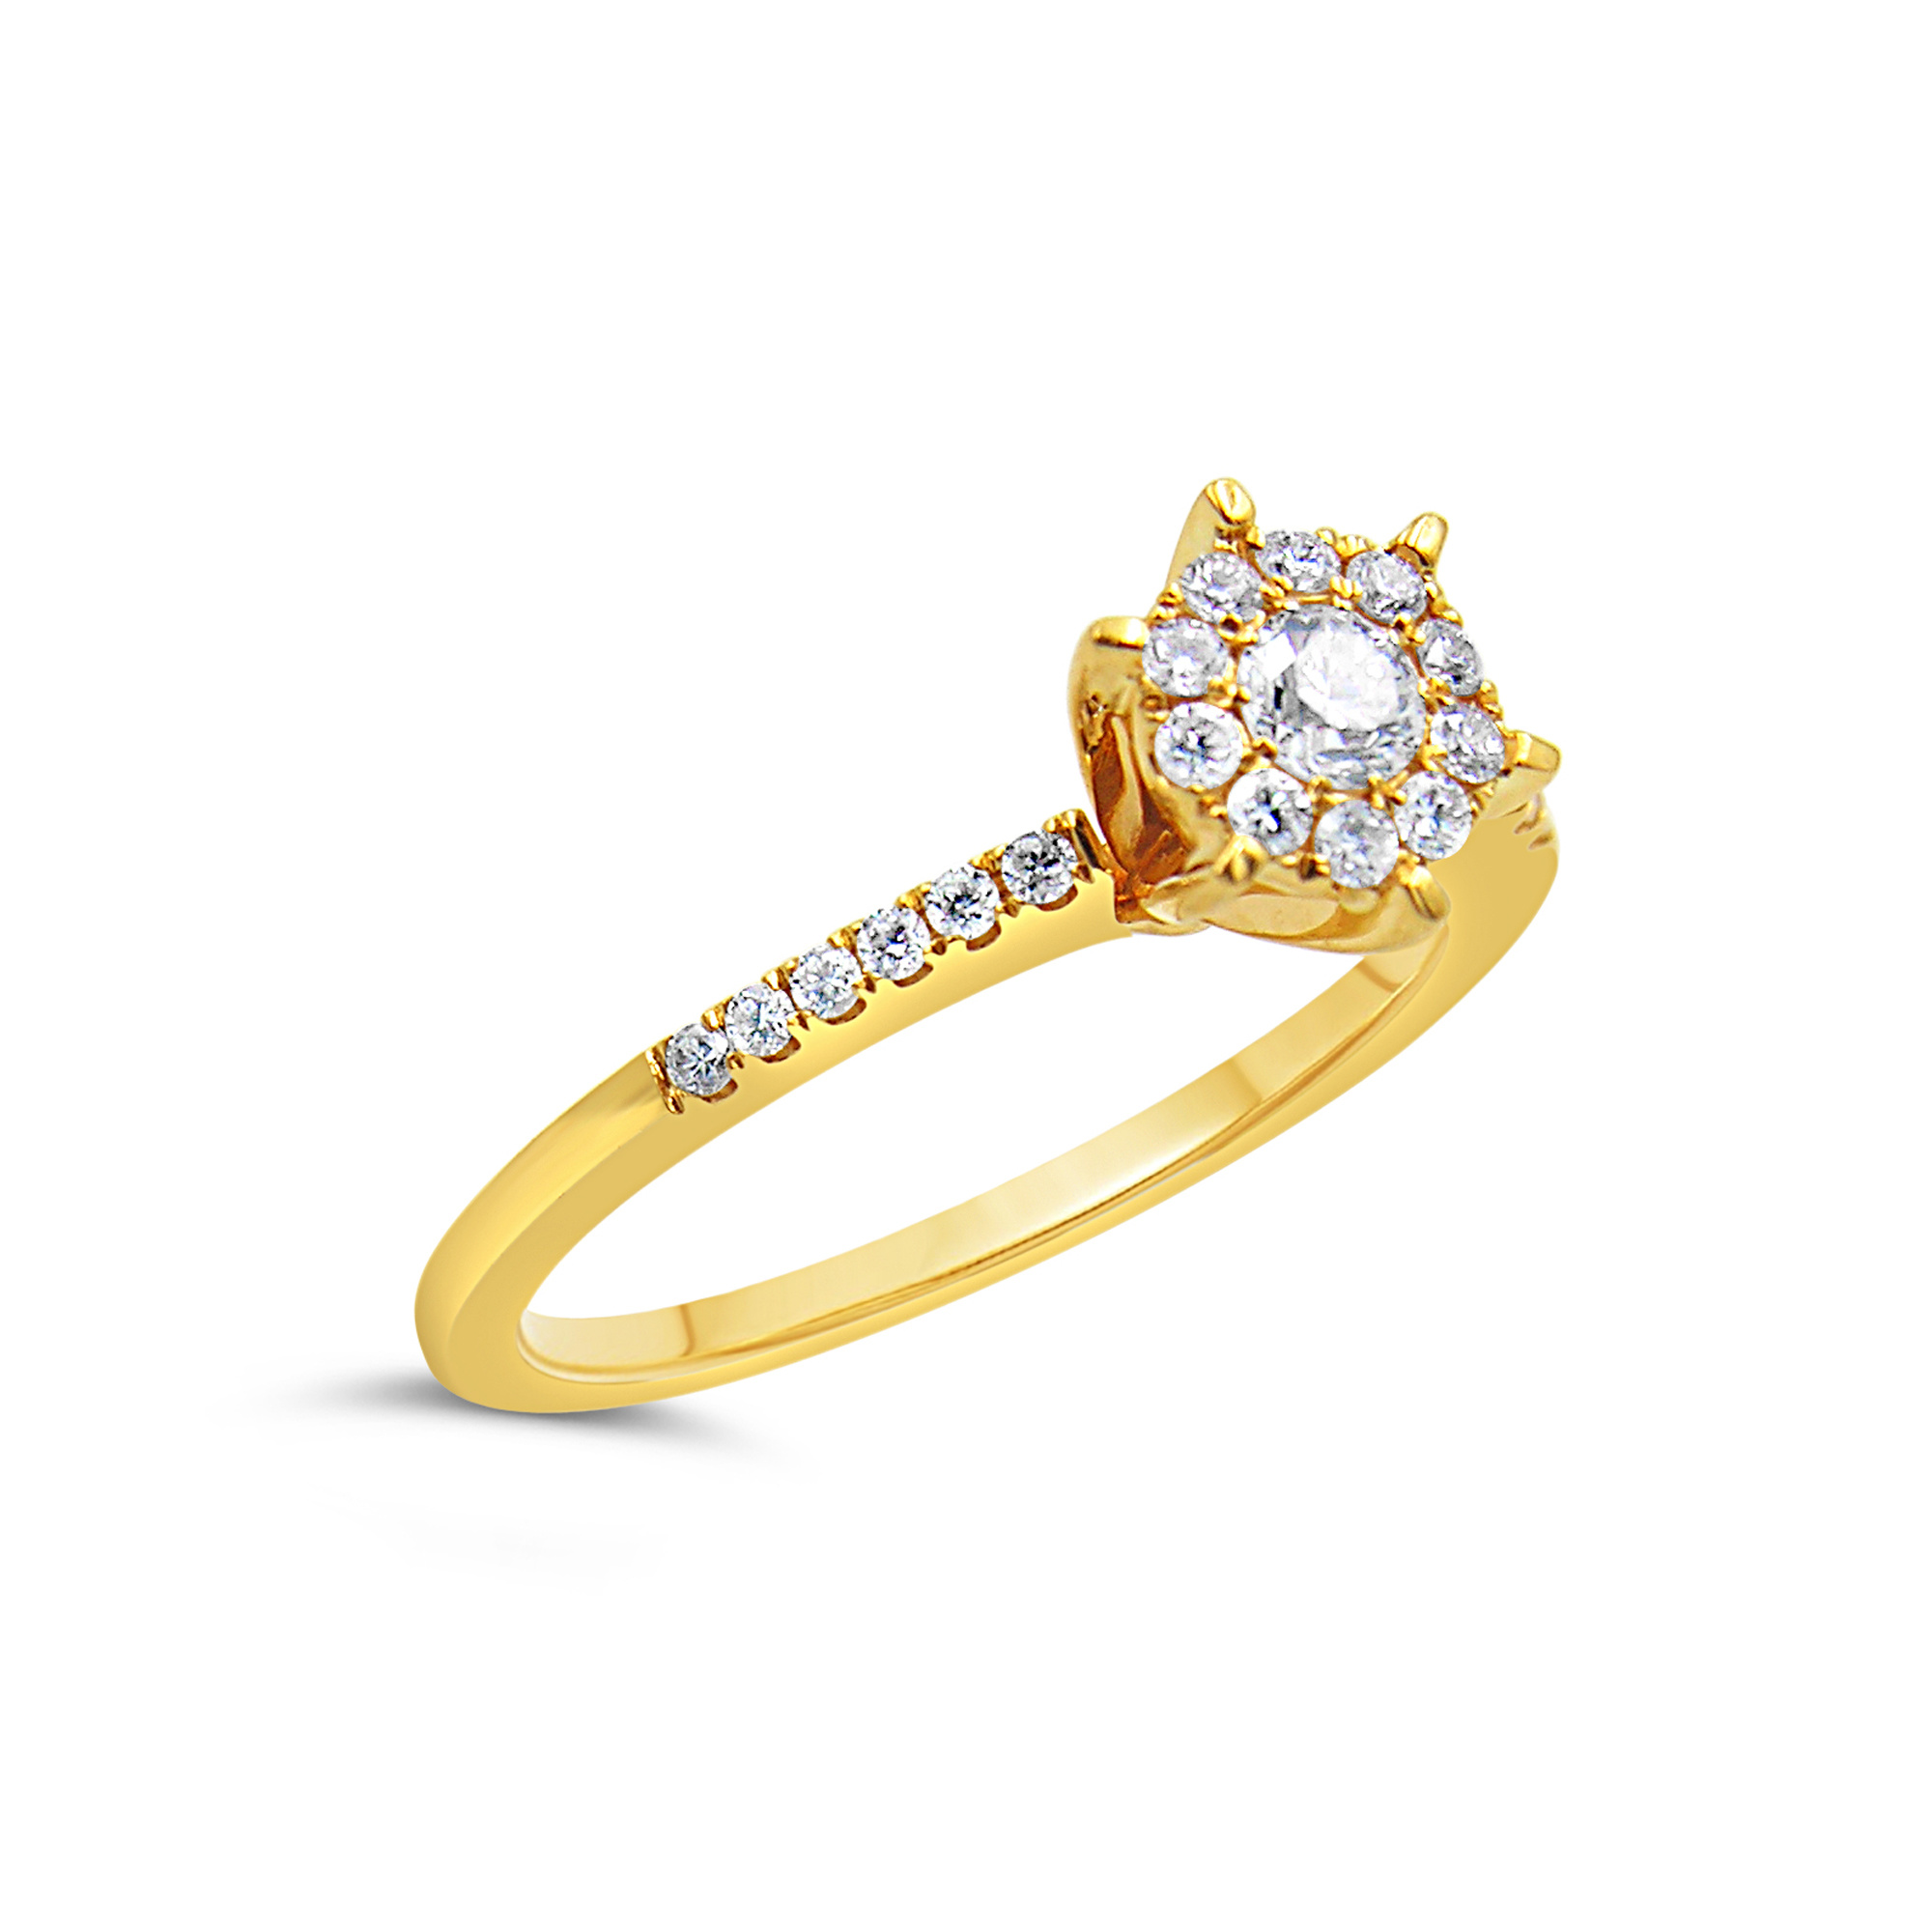 18kt yellow gold engagement ring with 0.36 ct diamonds